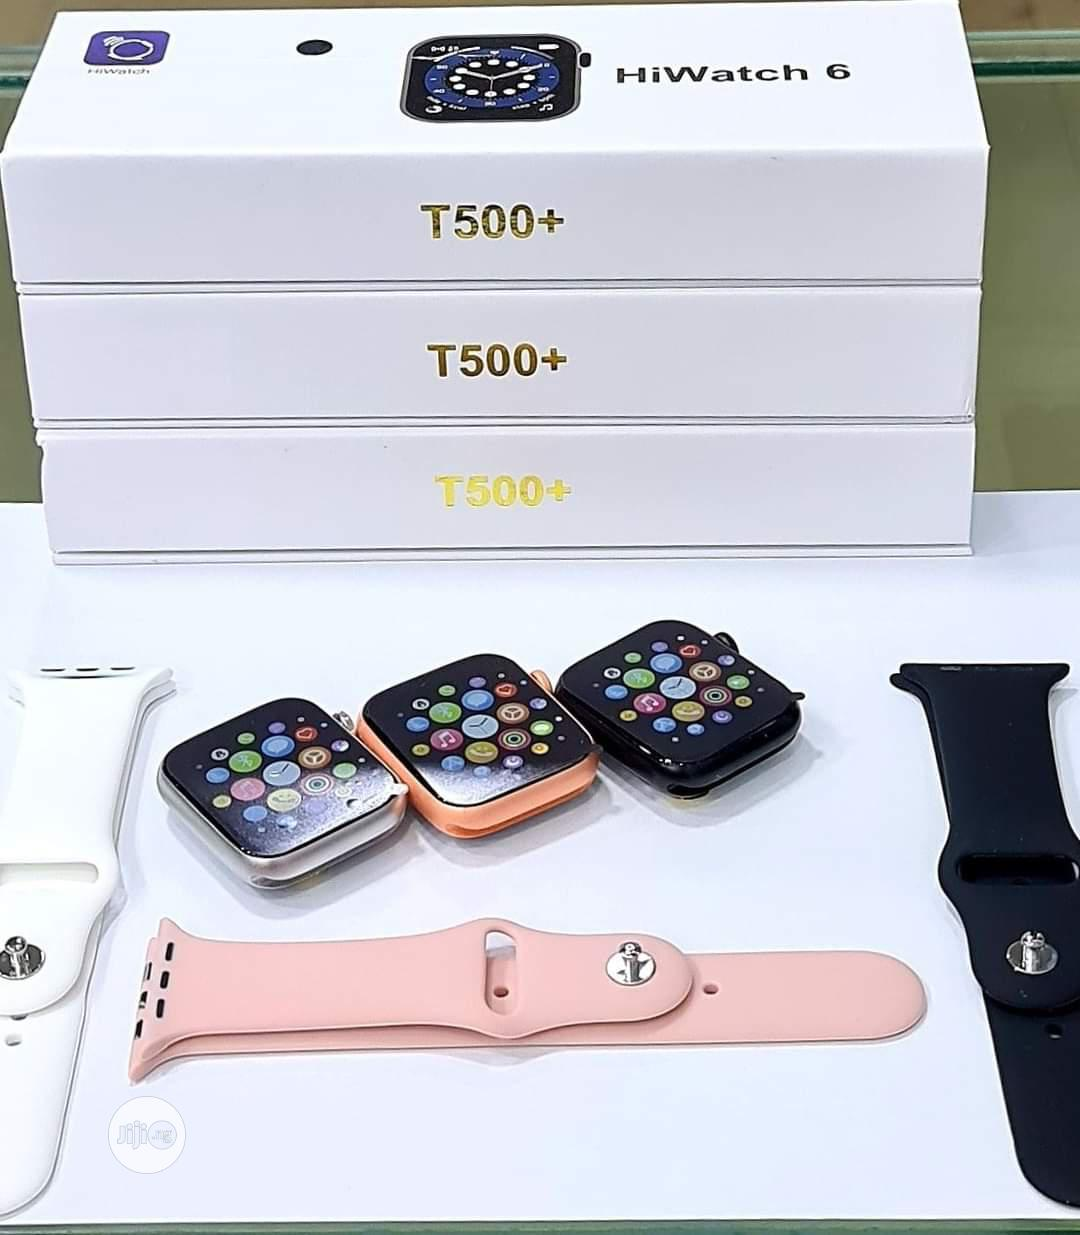 T500+ Plus Hiwatch 6 Series 6 IWO 13 Smart Watch | Smart Watches & Trackers for sale in Ikeja, Lagos State, Nigeria